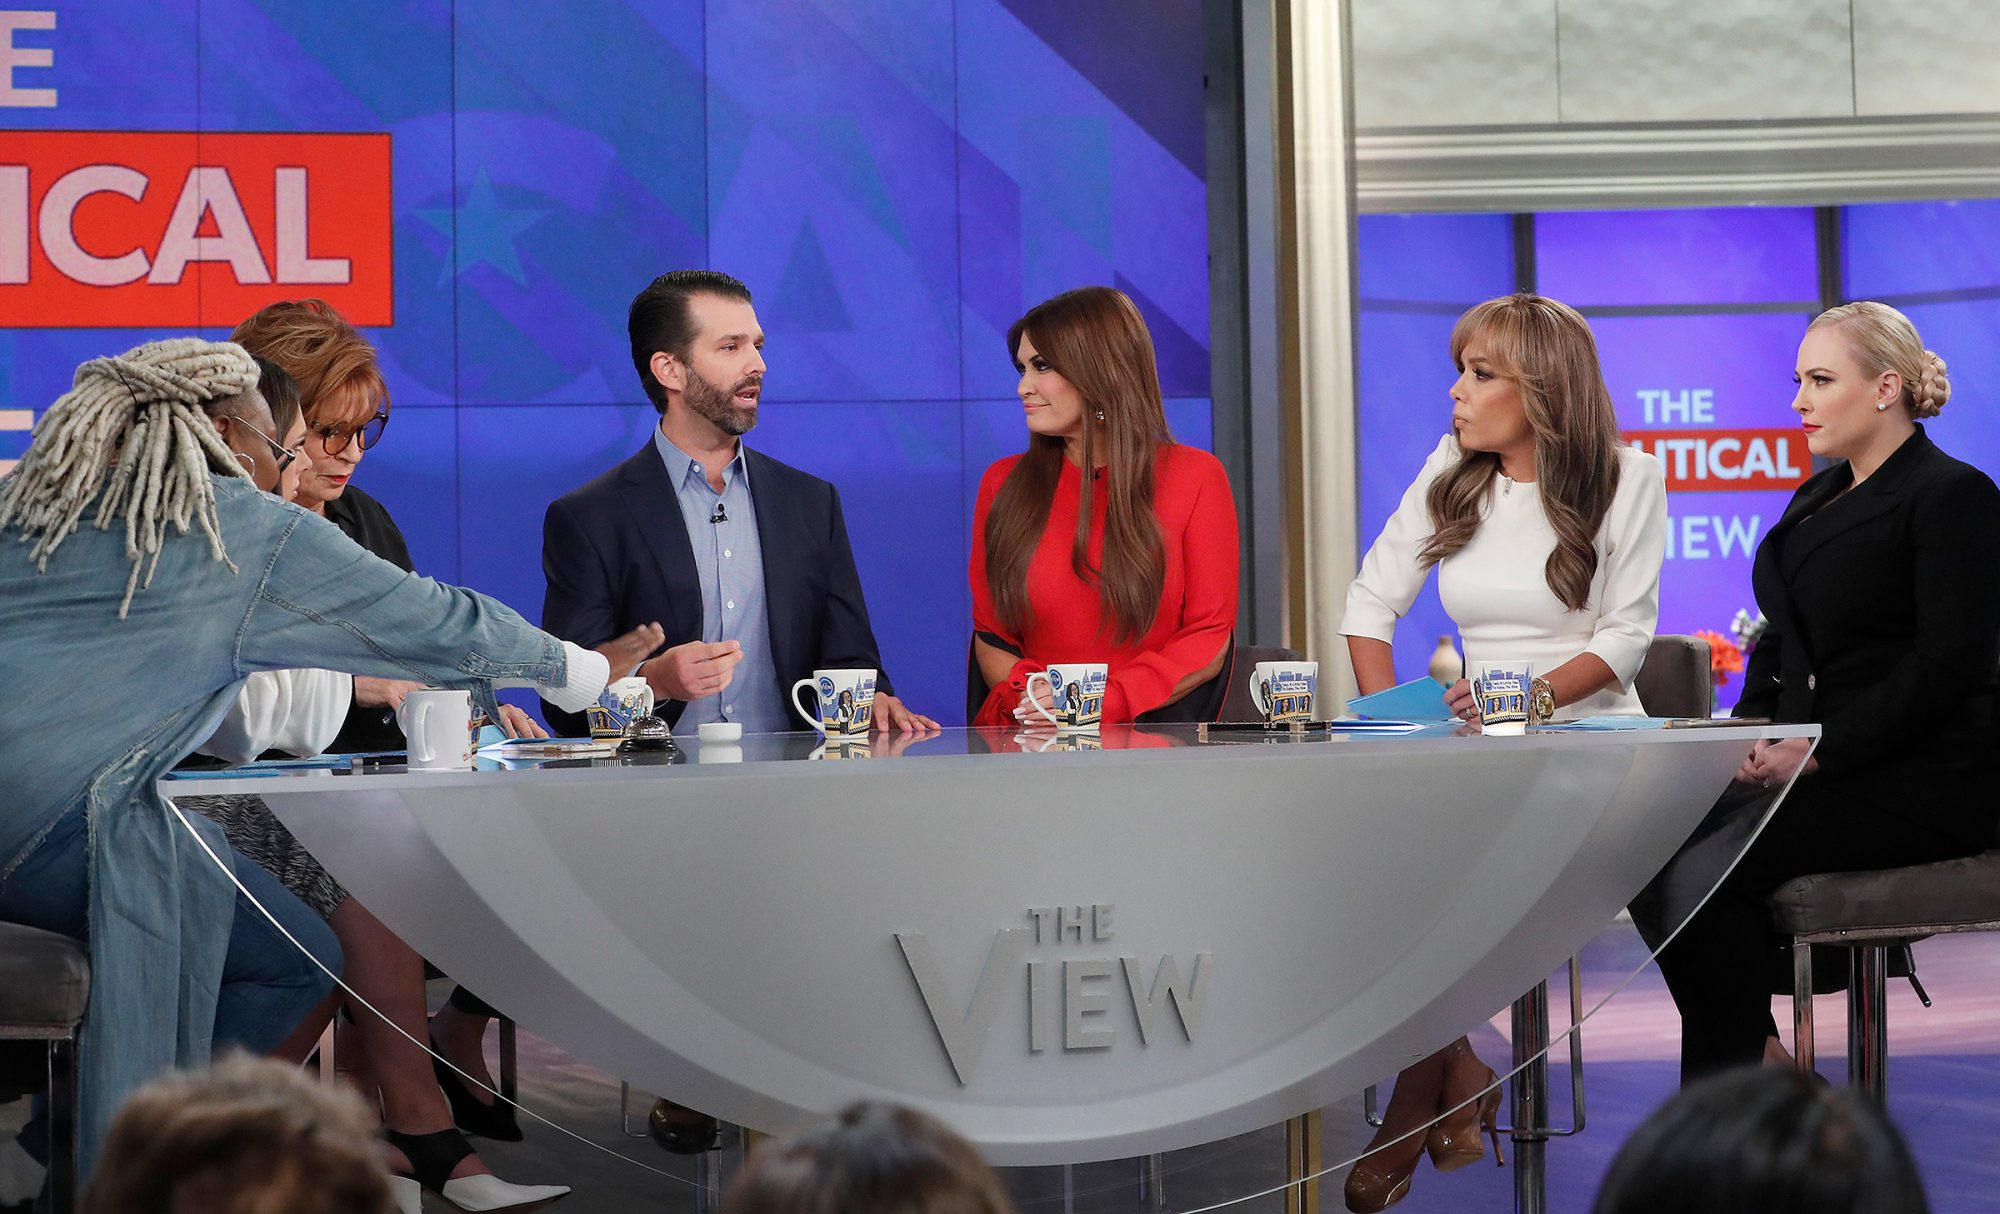 THE VIEW - Donald Trump Jr. and Kimberly Guilfoyle